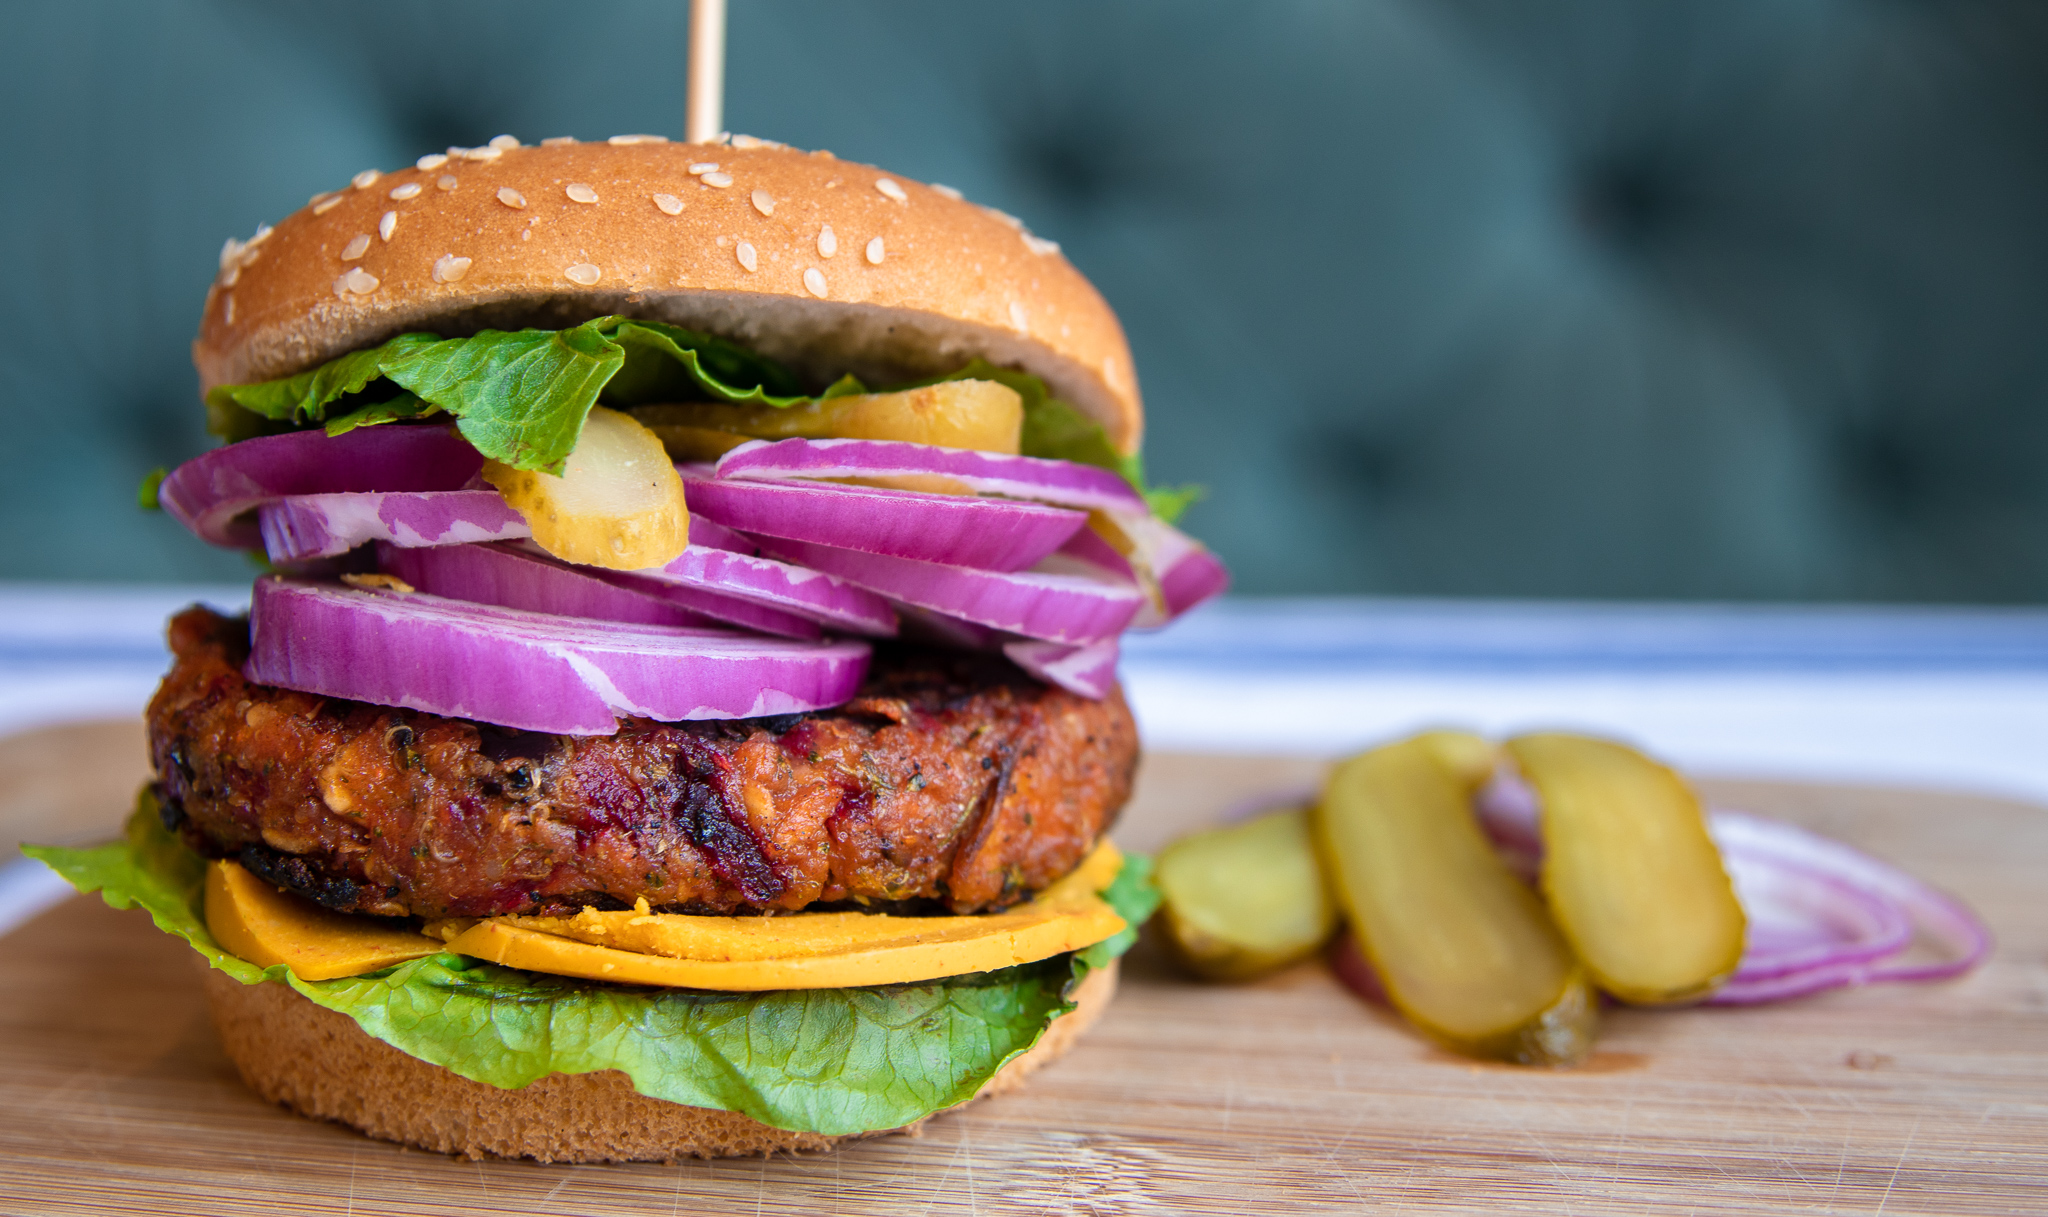 If you have been on the hunt for a healthy, and hearty homemade veggie burger, I think we have what you have been looking for.  This smokey, flavorful  burger is packed full of veggies, with protein rich quinoa and black beans. This burger will leave you full, and satisfied with little guilt.. They also freeze really well, so this veggie burger is also great for meal prep! So fire up the grill and give this healthy and delicious burger recipe a try!